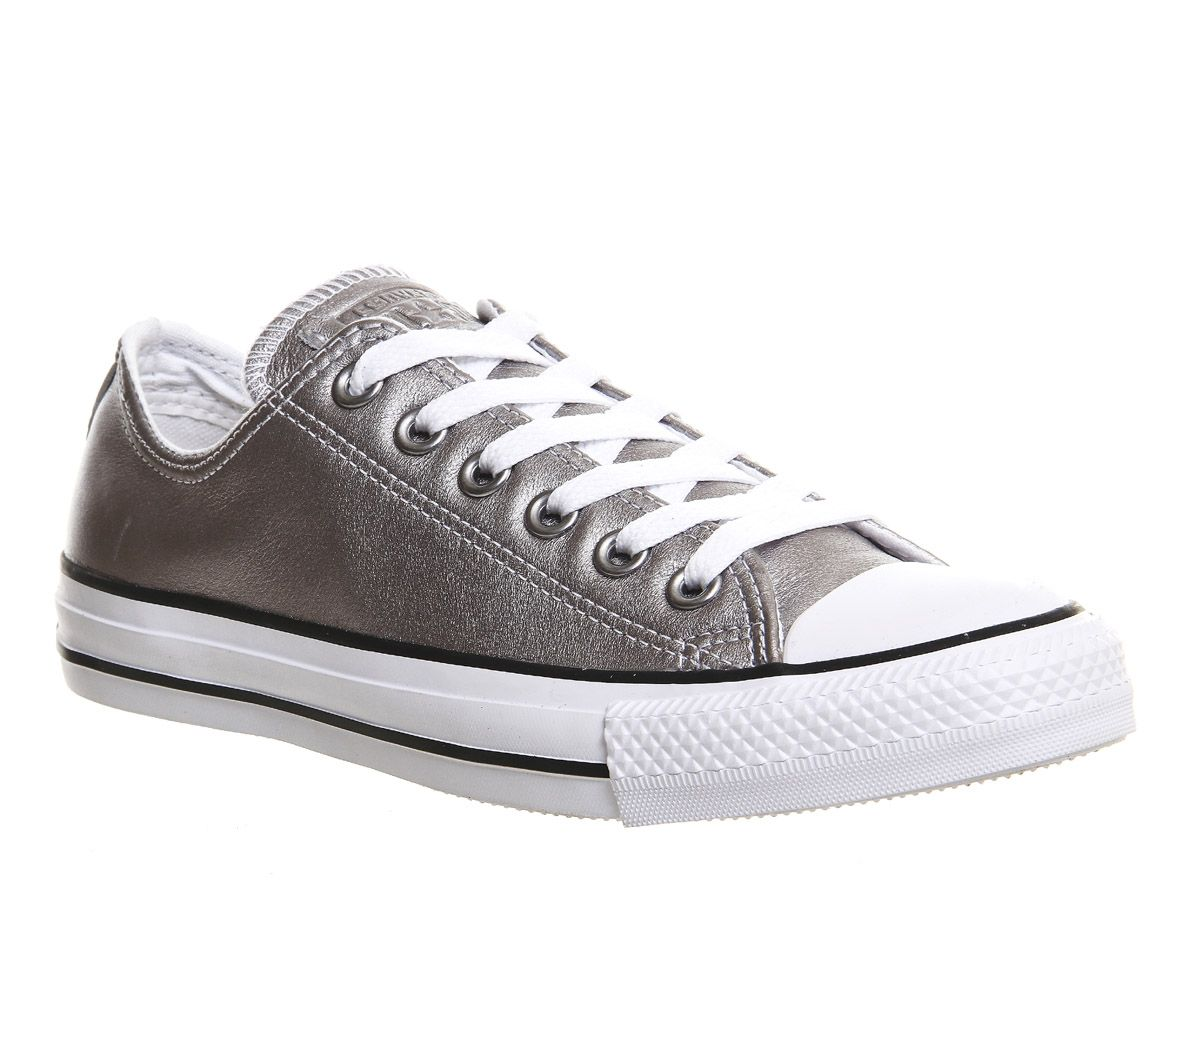 9d7a133c1c8b1e Converse All star Low Leather New Silver Exclusive - His trainers